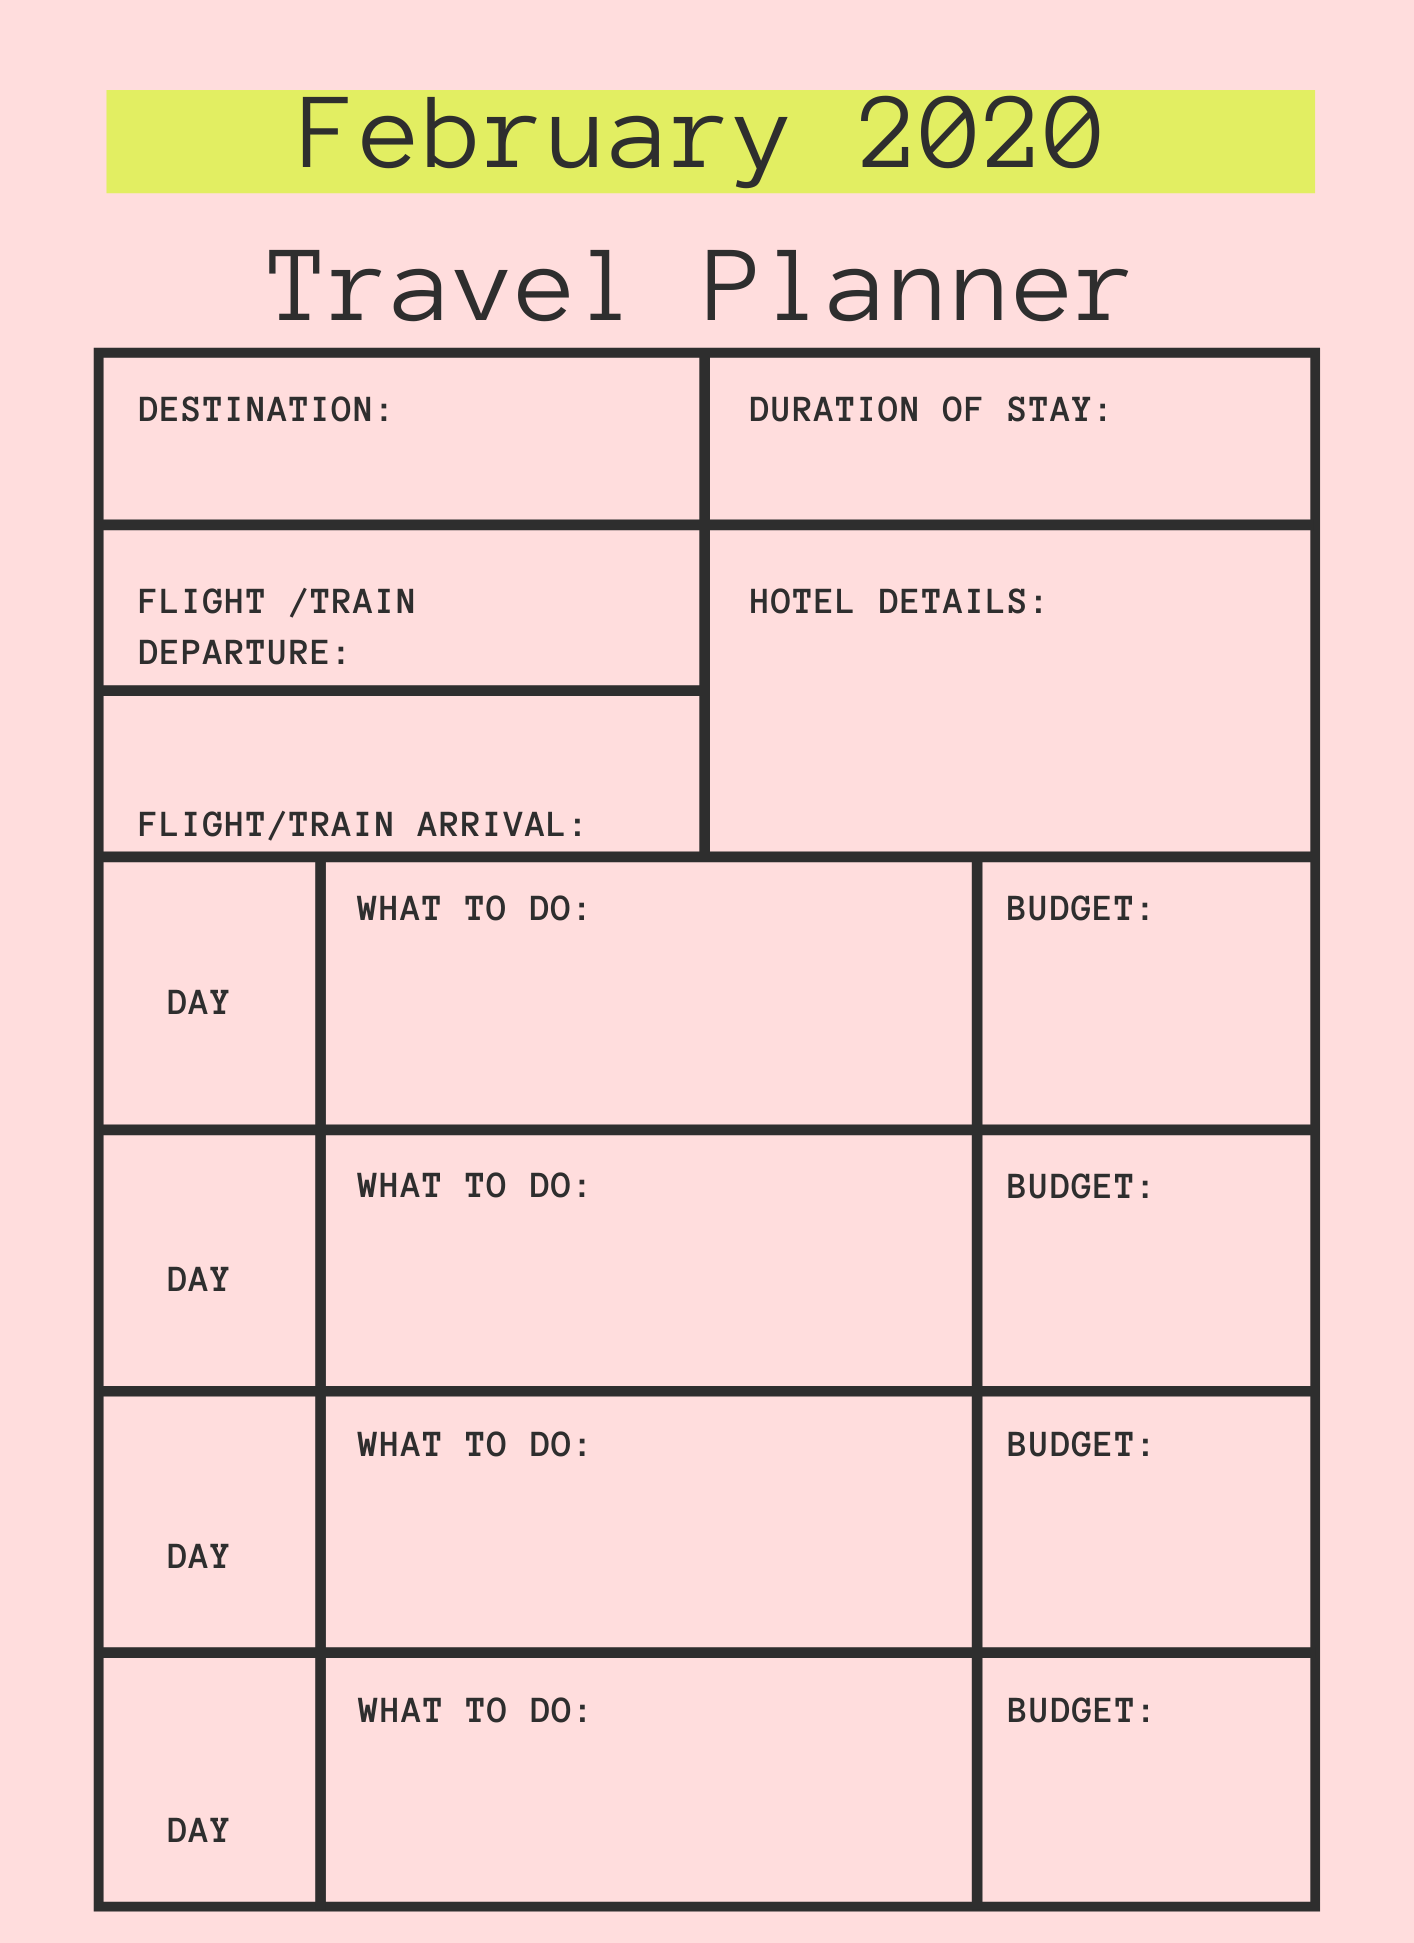 February 2020 Printable Travel Planner